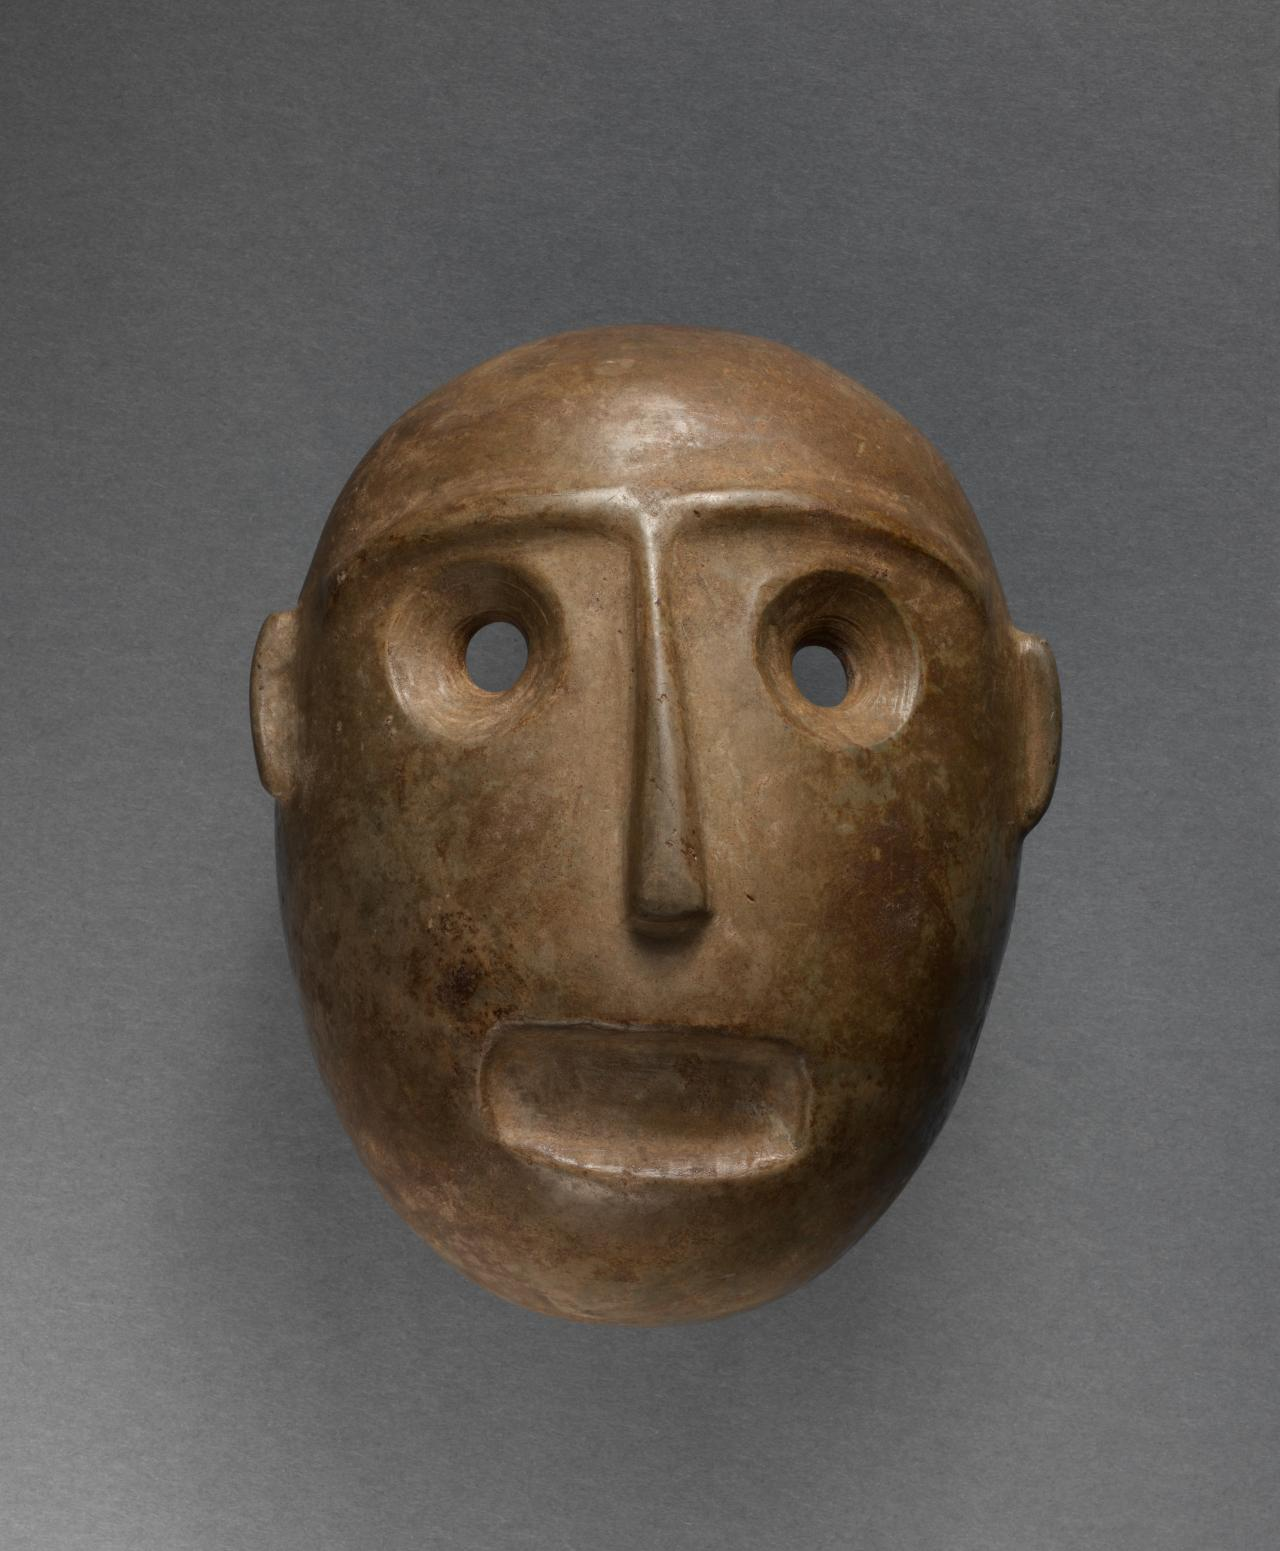 Colima, West Mexico Mask 400 BCE-200 BCE